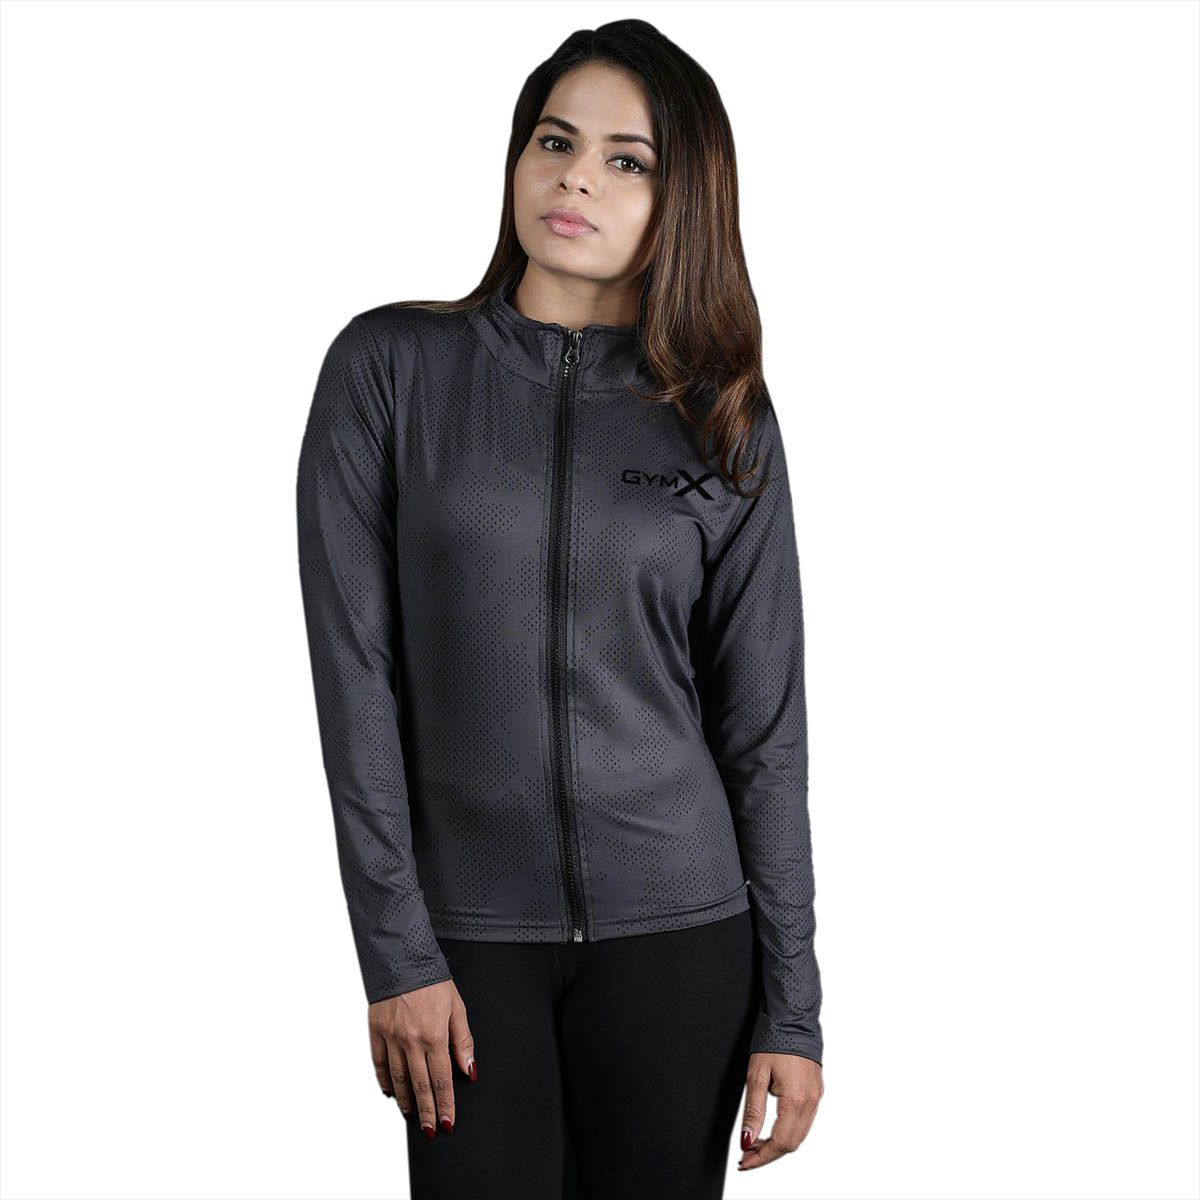 GymX Womens Royal Grey Full Zip Jacket- Athena Series